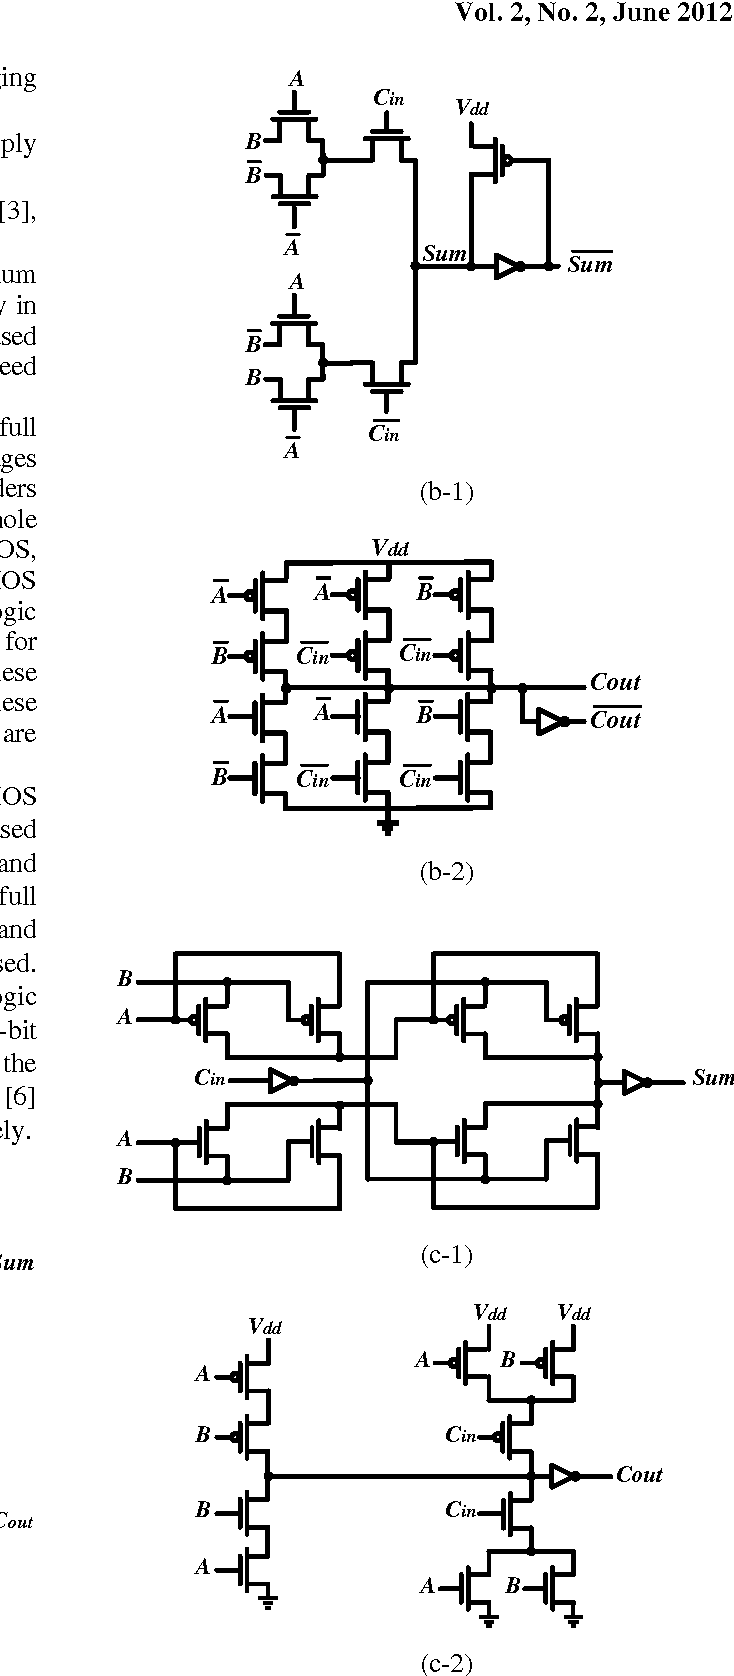 Design Of A Novel Hybrid Cmos Full Adder With Low Power Consumption Diagram Figure 1